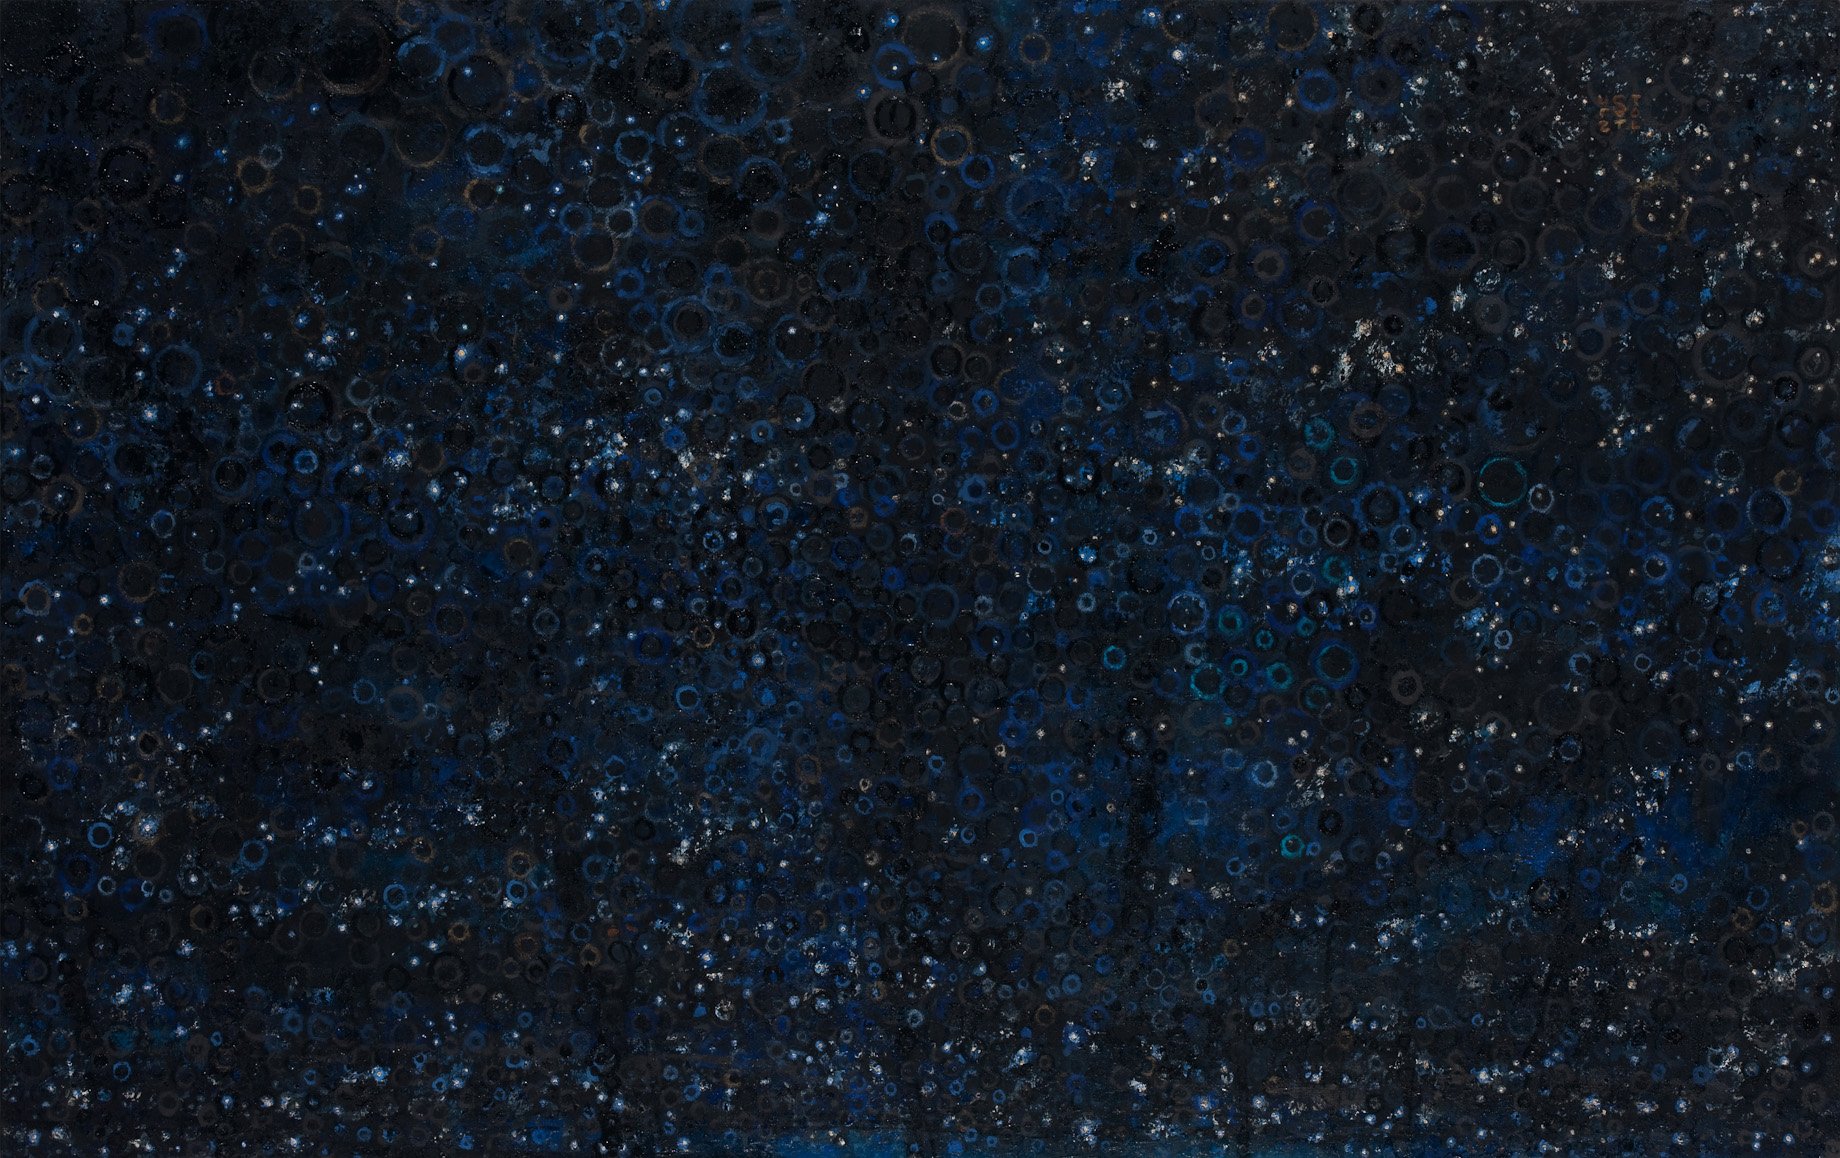 """""""Dark Sky"""" by Randall Stoltzfus, 2009, oil with gold and palladium leaf on panel, 24 by 38 inches"""